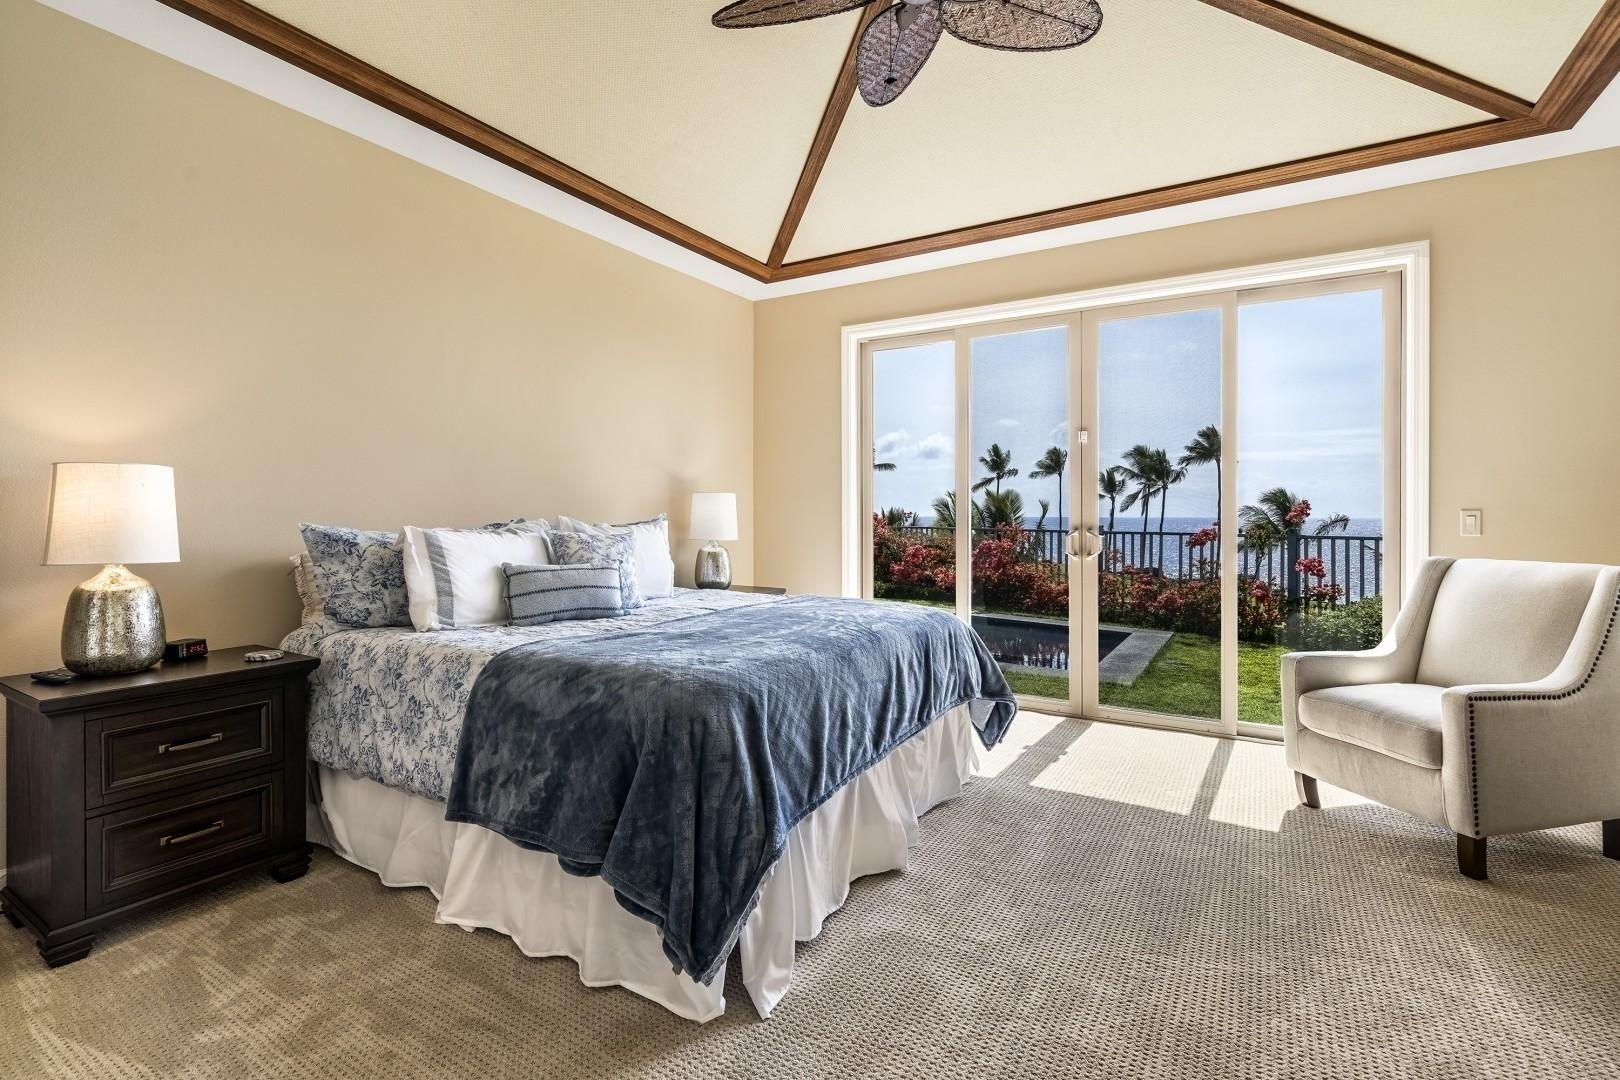 Master bedroom offering a King Bed, A/C, Lanai Access, TV and ensuite